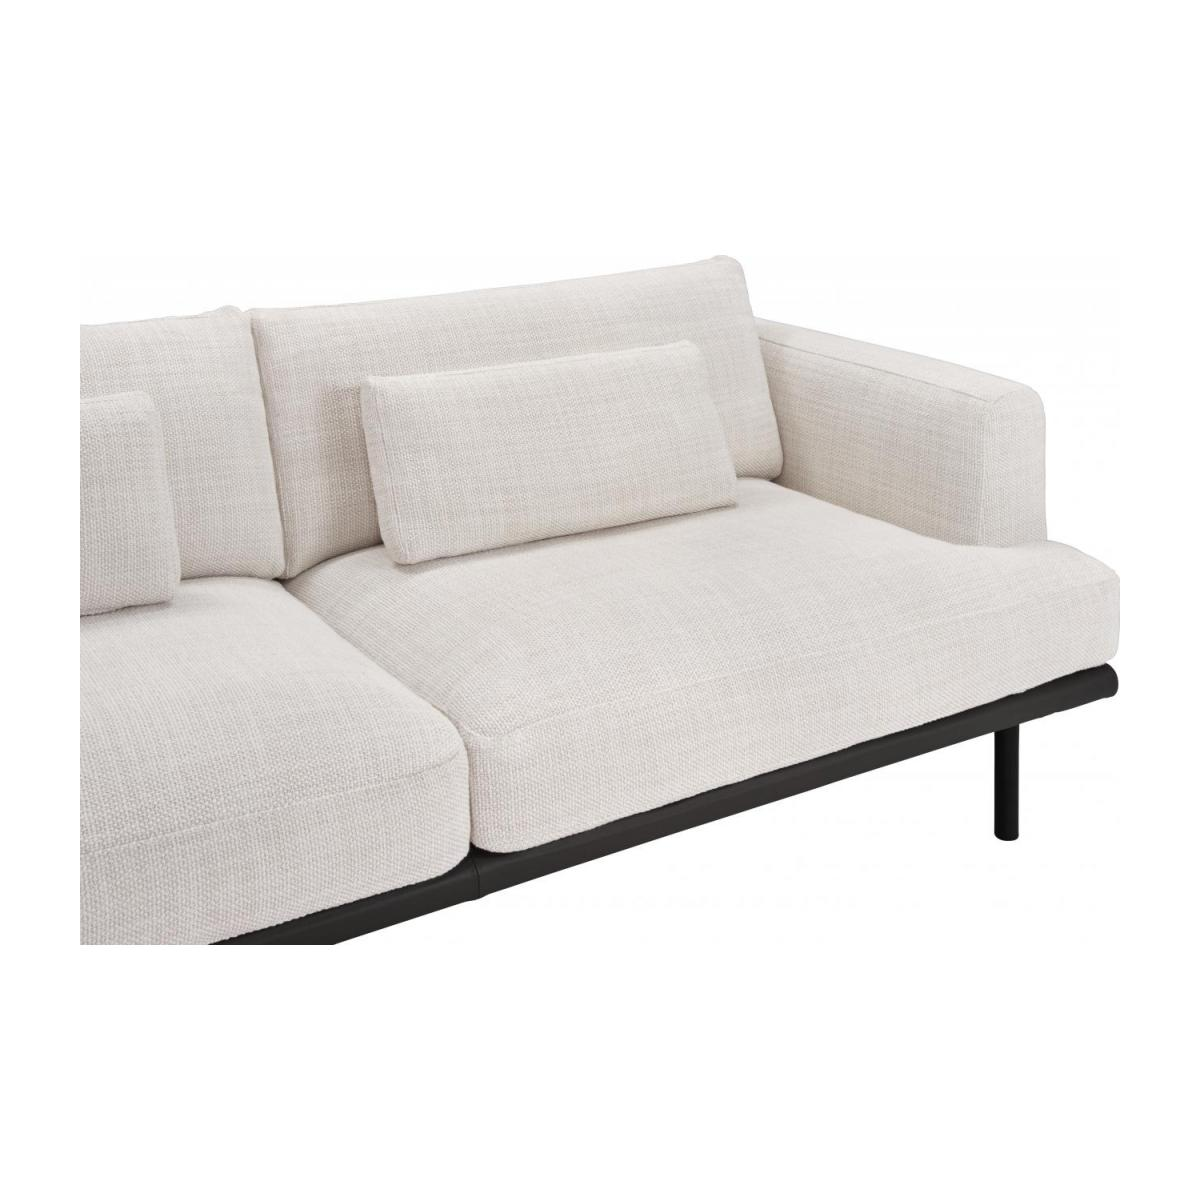 3 seater sofa in Fasoli fabric, snow white with base in black leather n°6